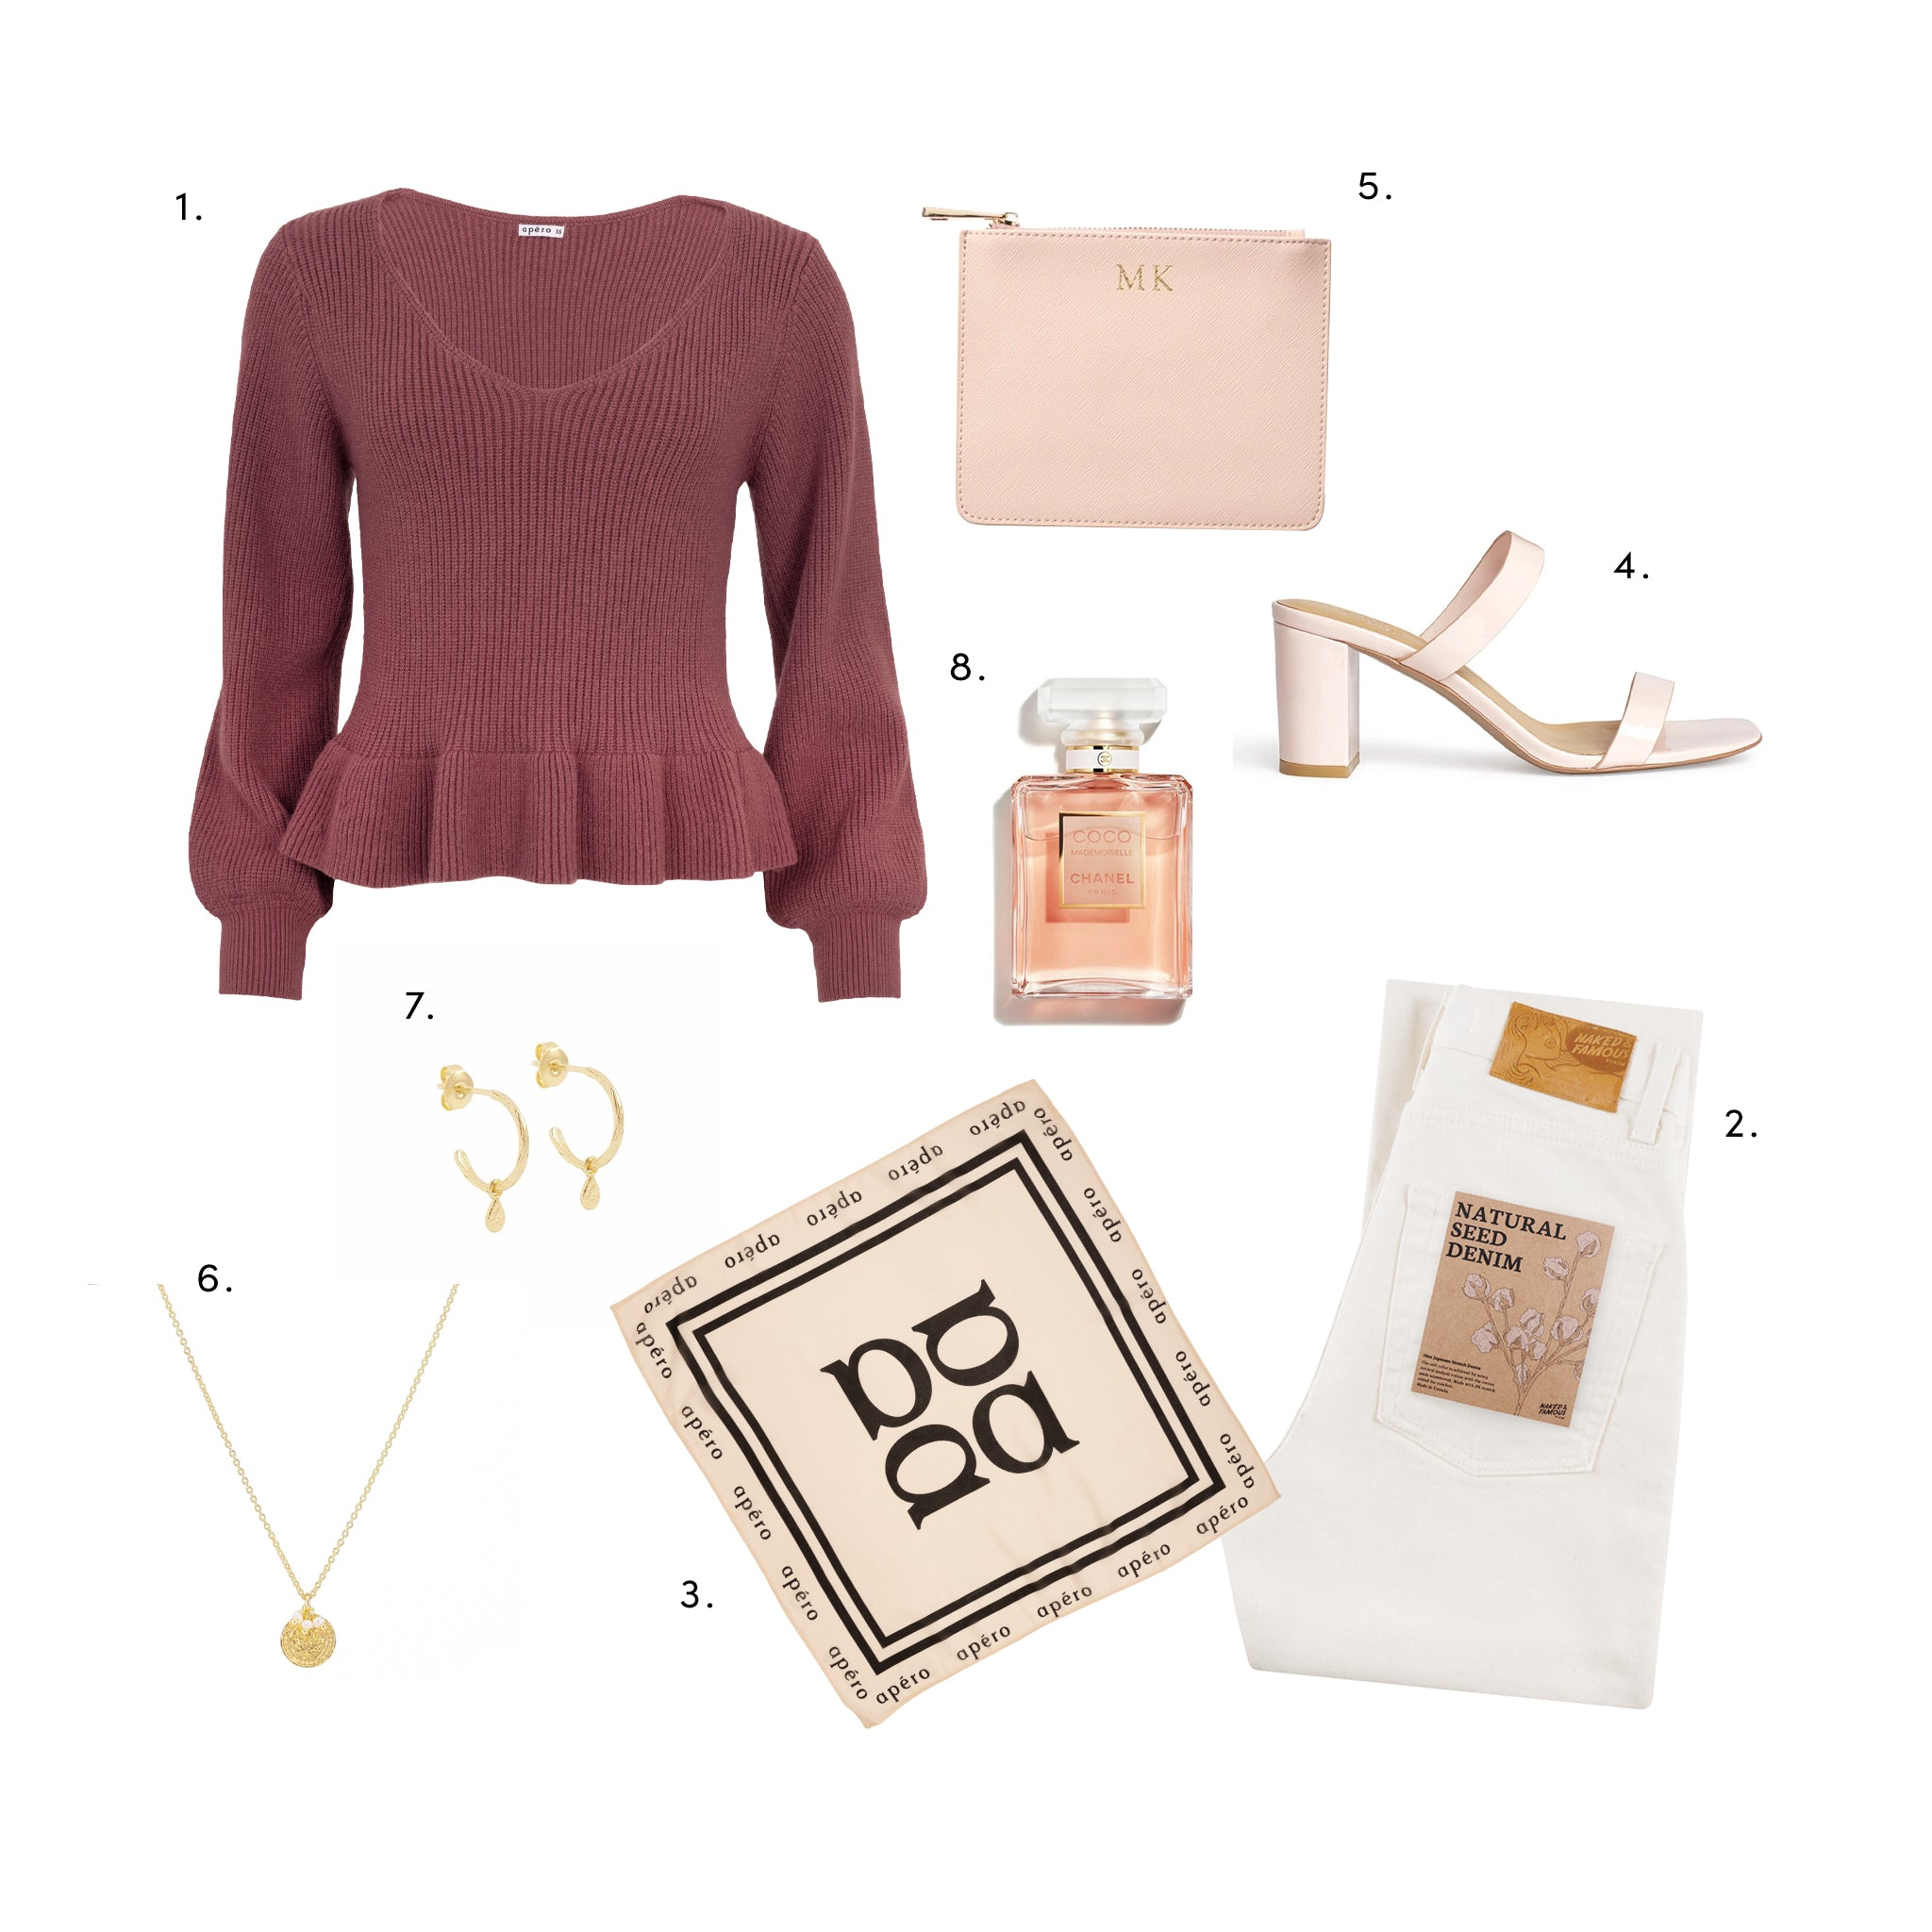 Feminine chic styling with Apero knit jumper